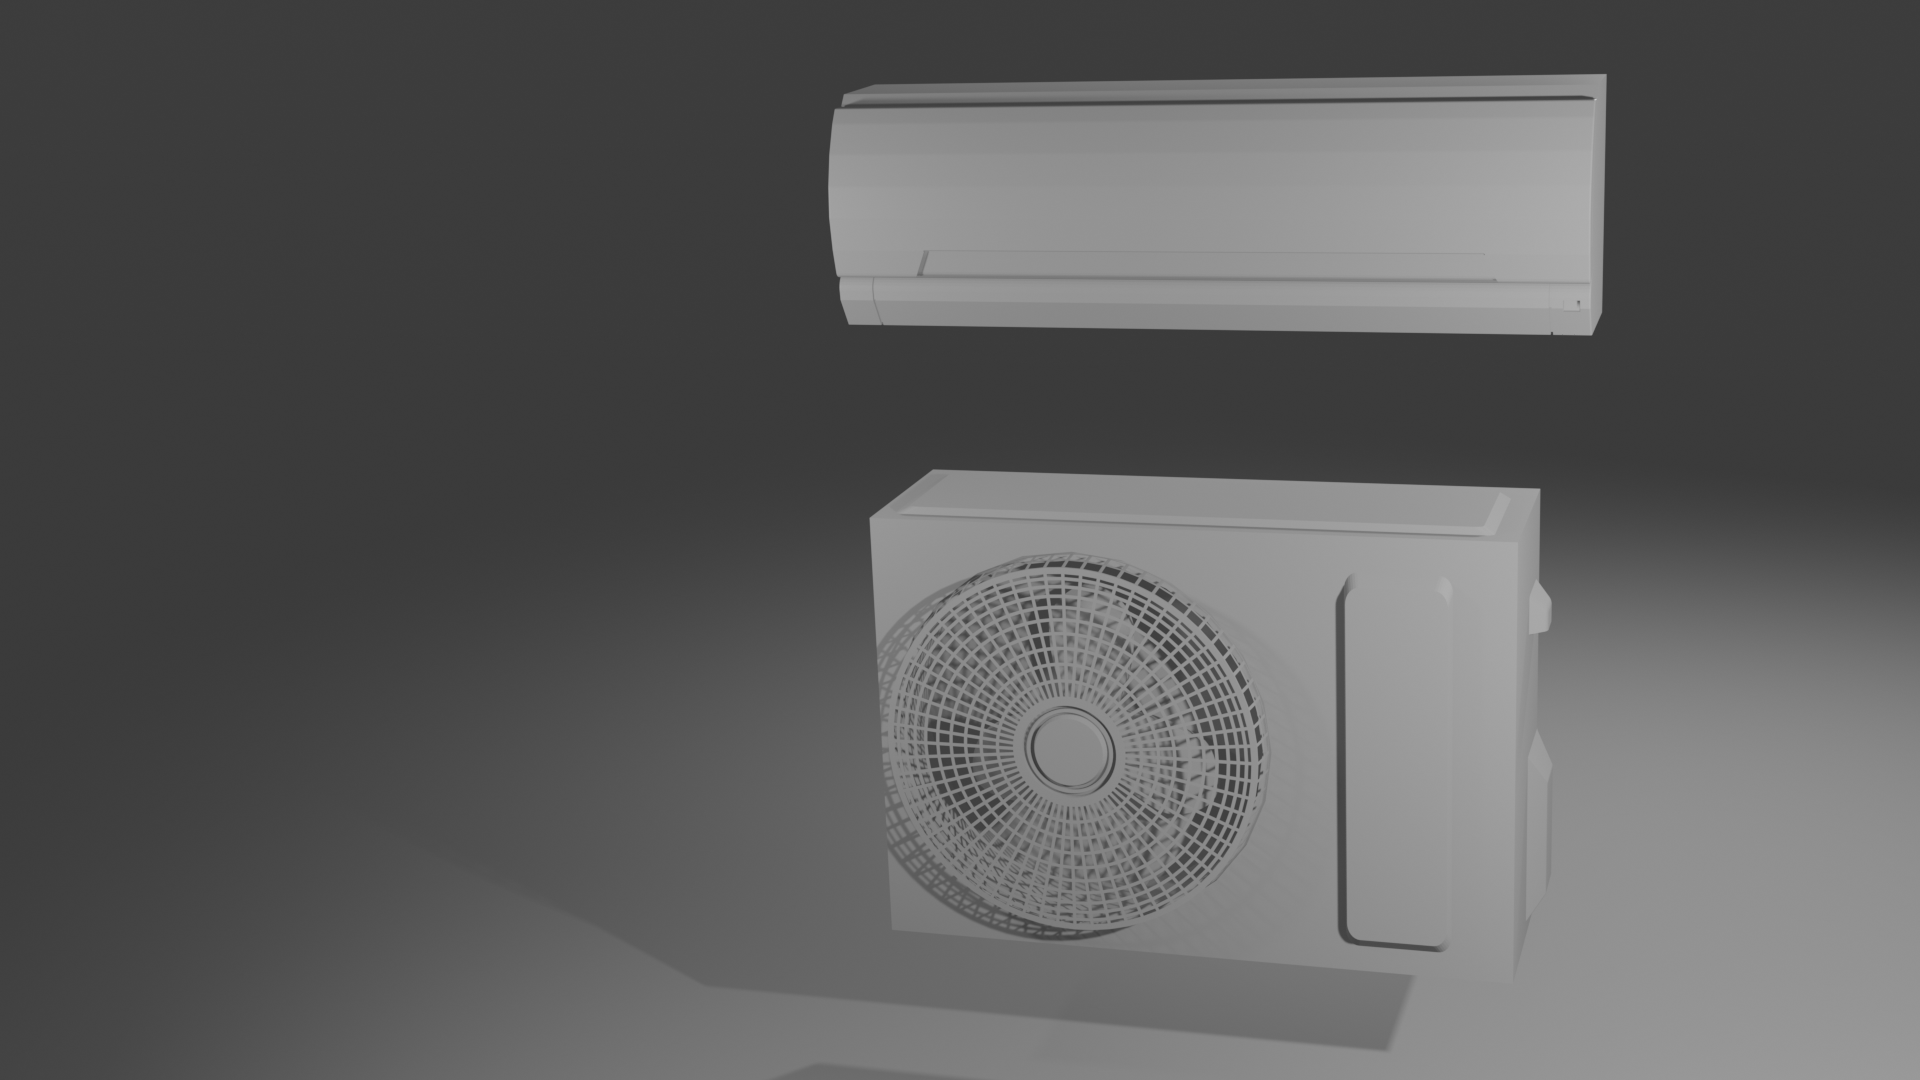 set.png Download STL file Aircon and Compressor unit for Dollhouse • 3D printable object, itzu